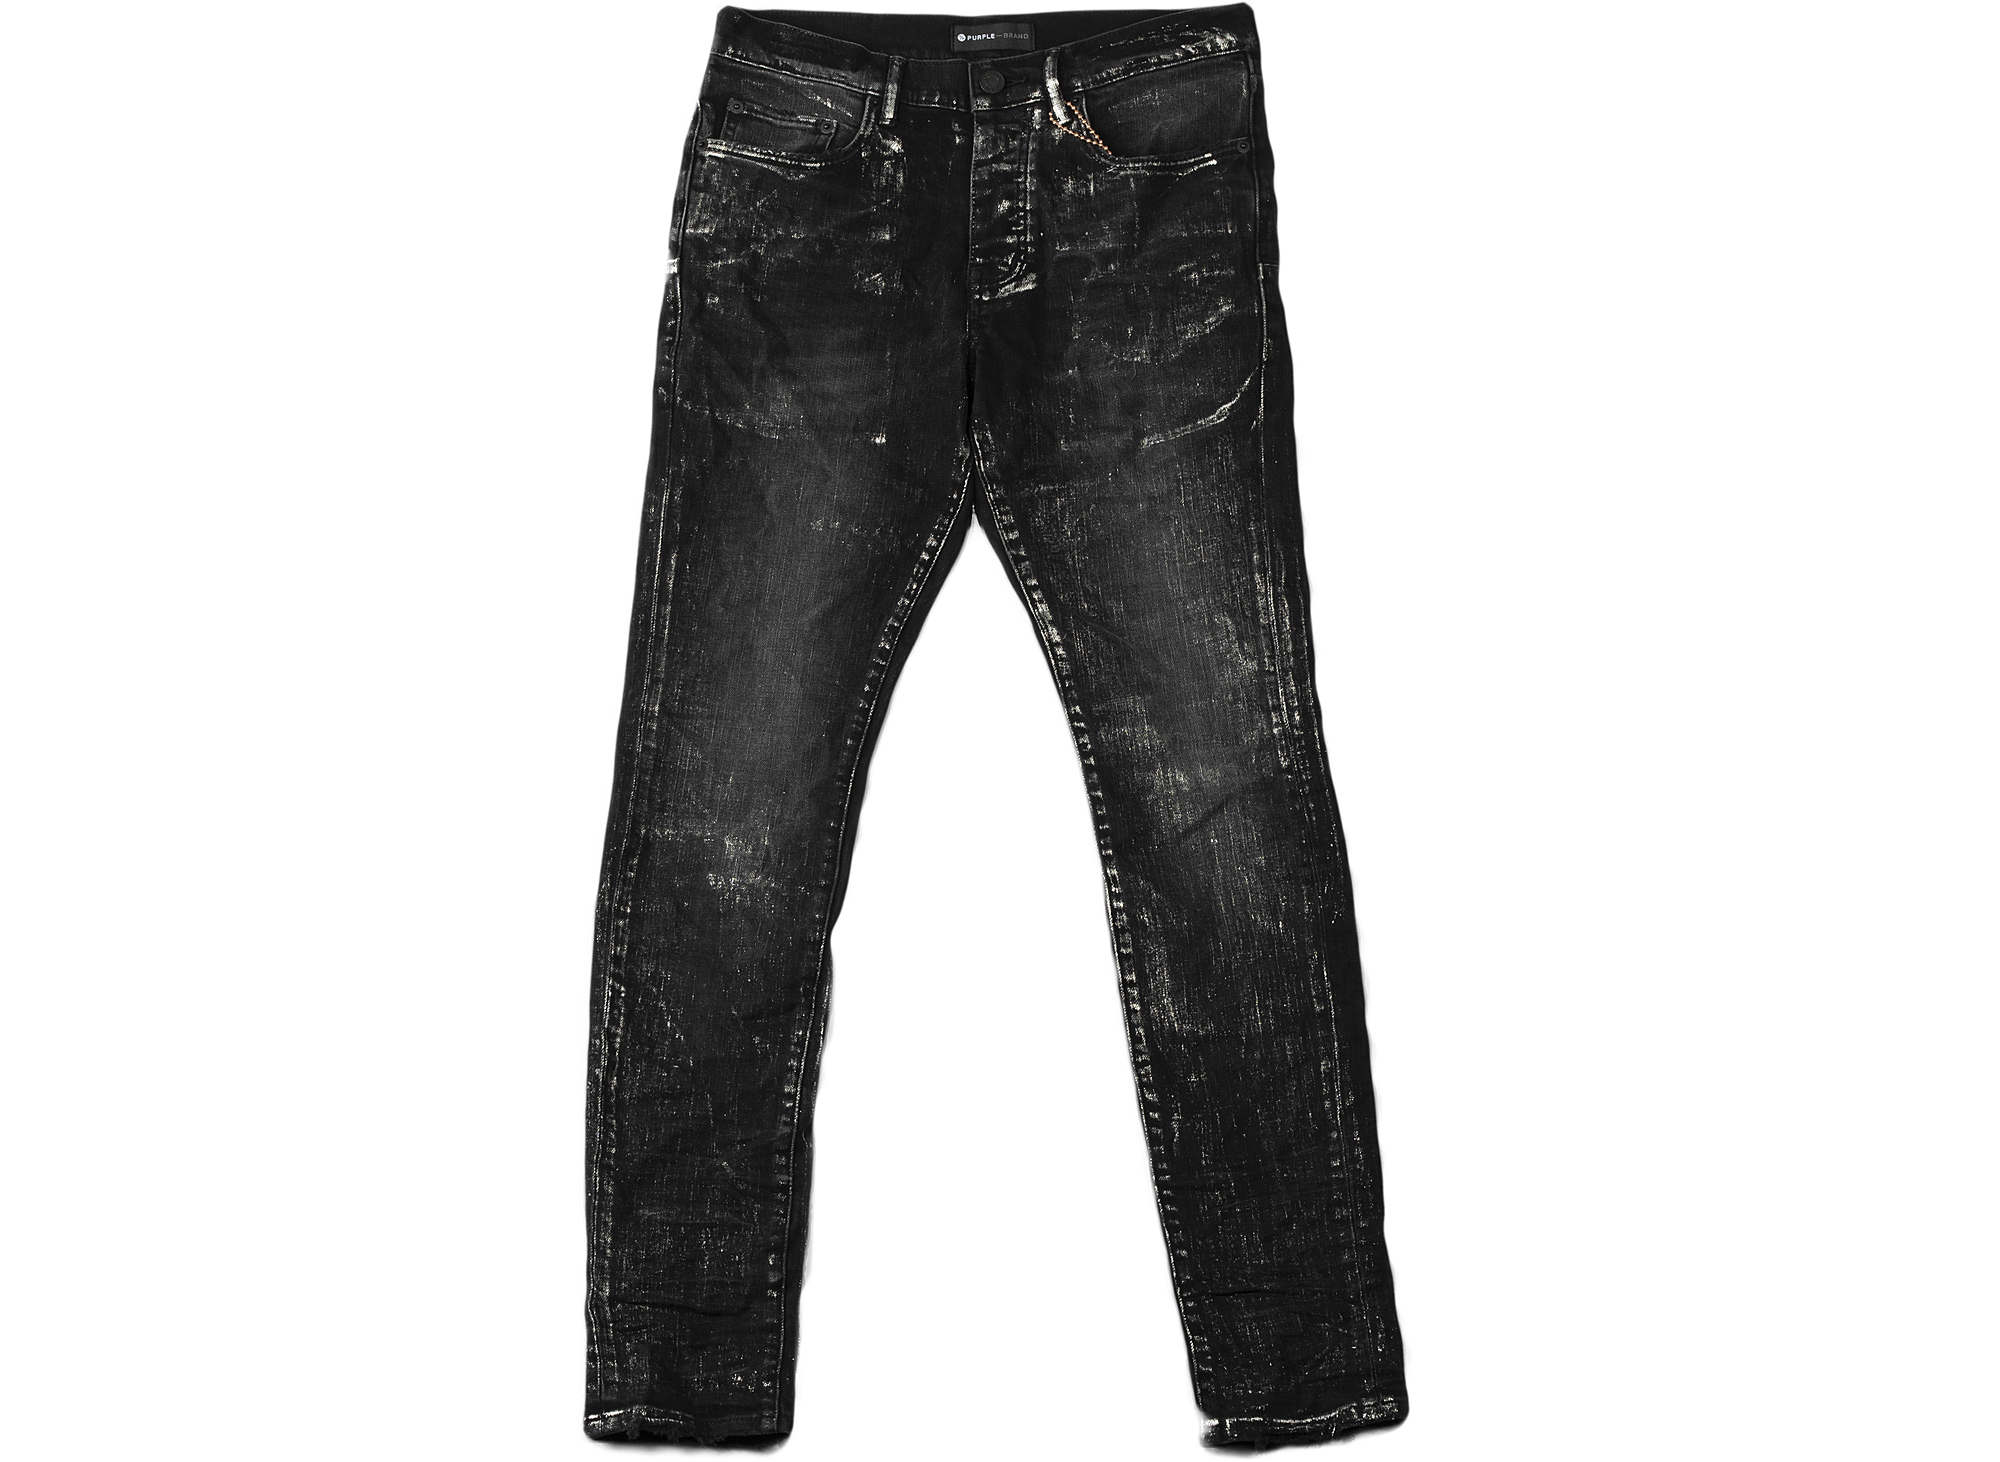 Purple Brand Black Wash Metallic Slim Fit Jeans xld